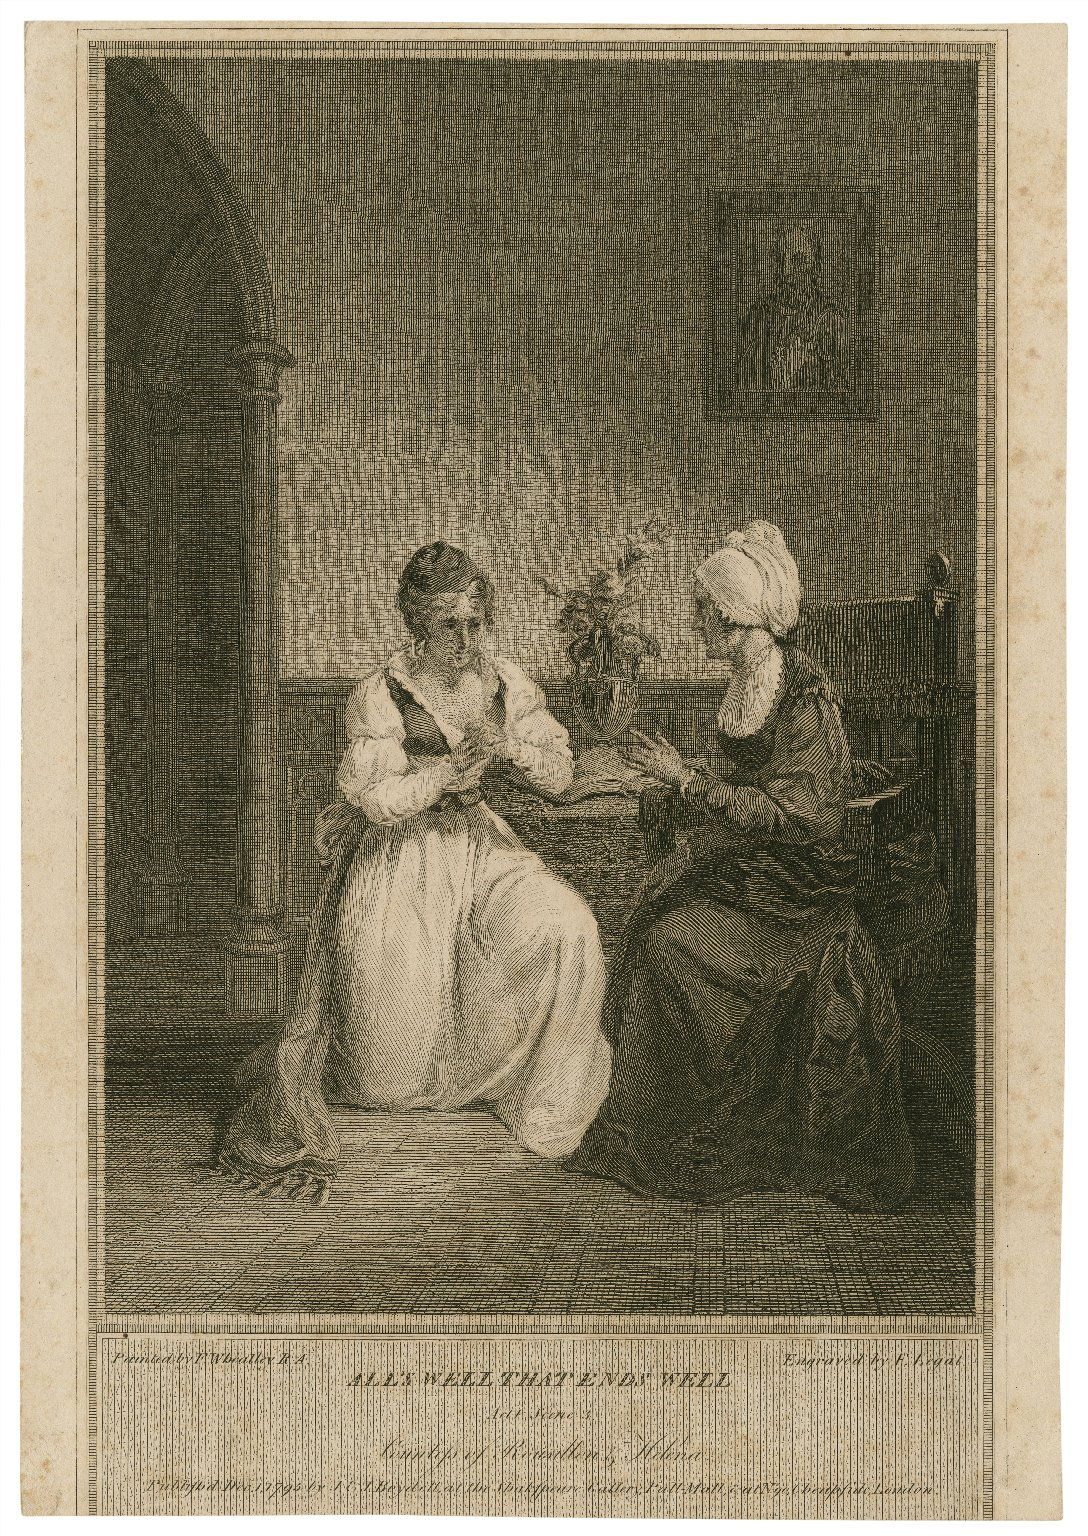 All's well that ends well, act I, scene 3, Countess of Rousillon & Helena [graphic] / painted by F. Wheatley R.A. ; engraved by F. Legat.